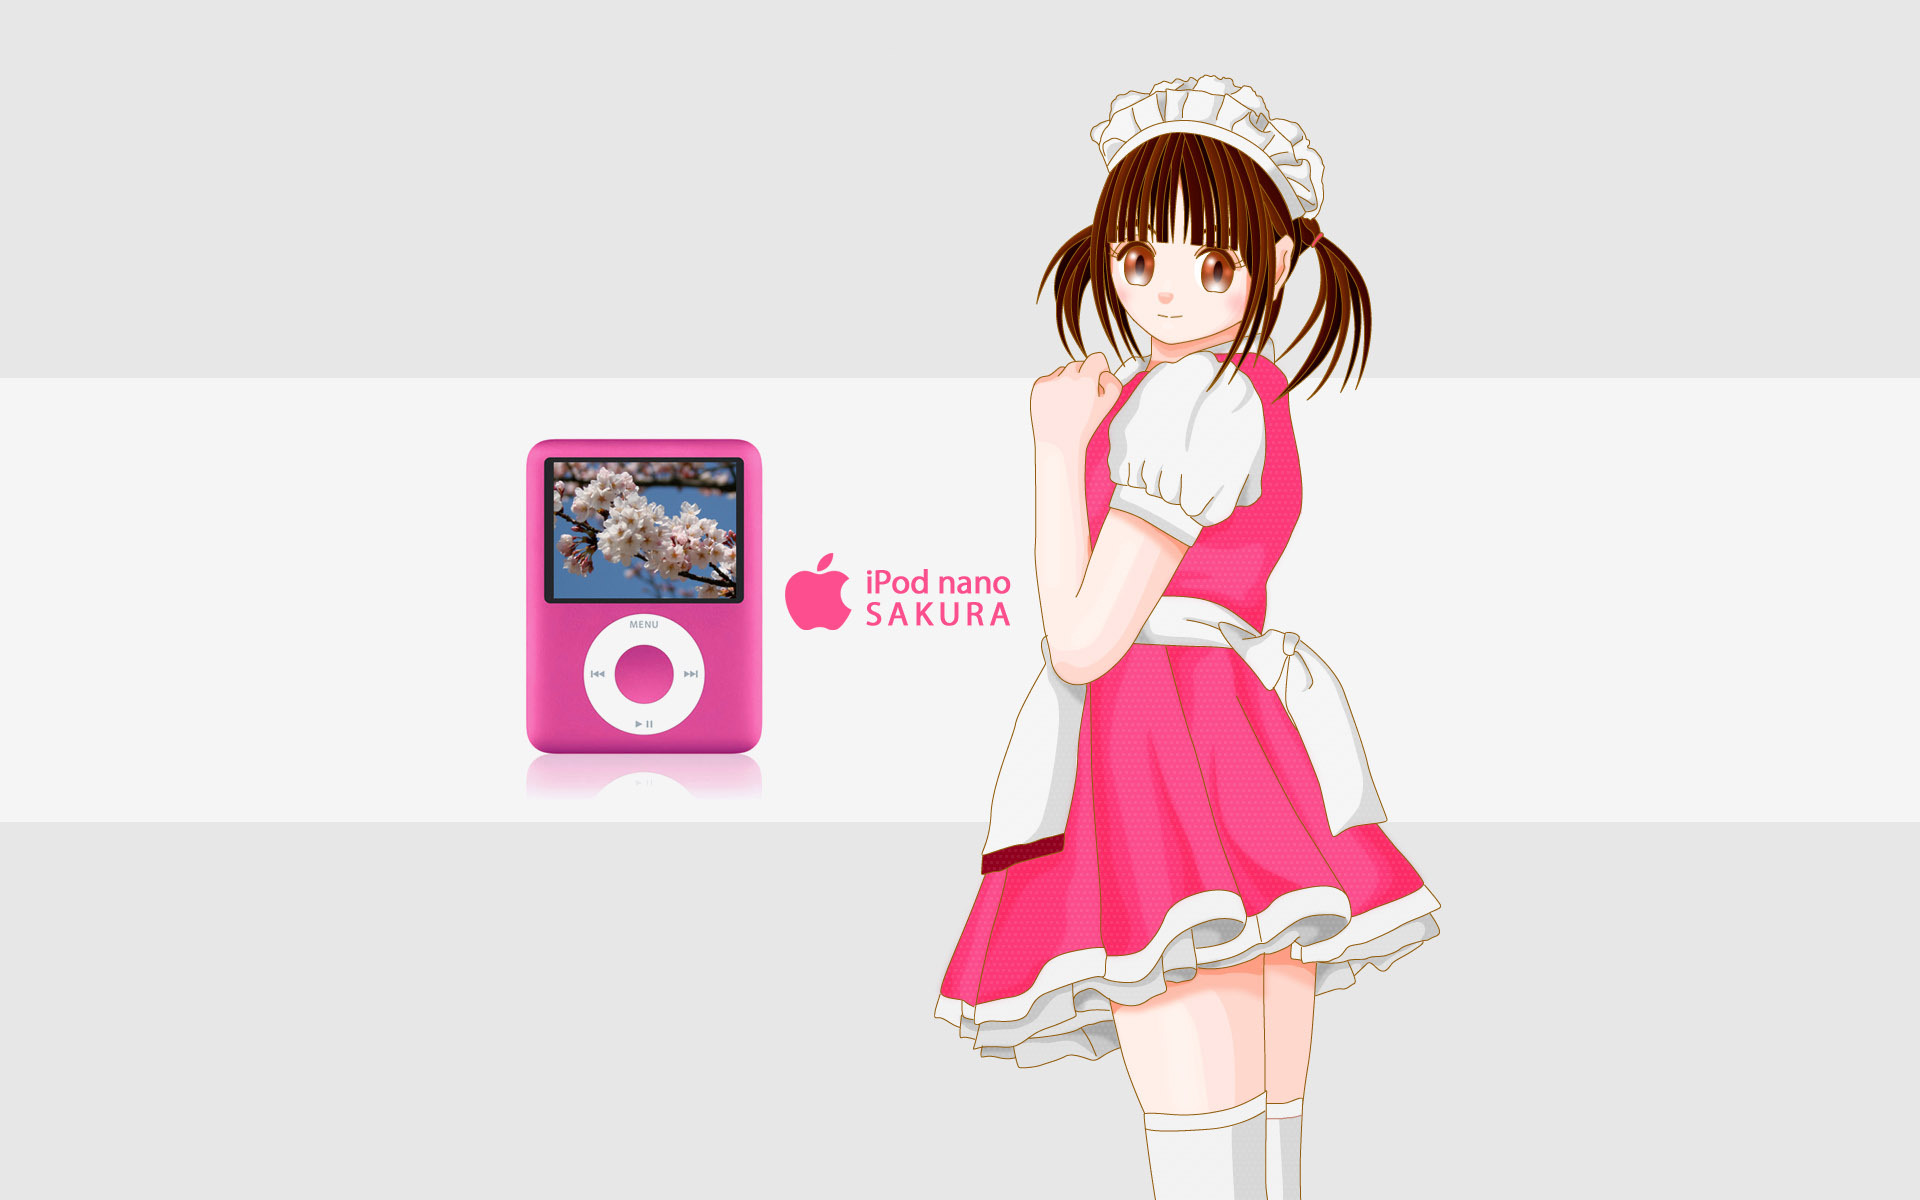 iPod Nano and anime girl